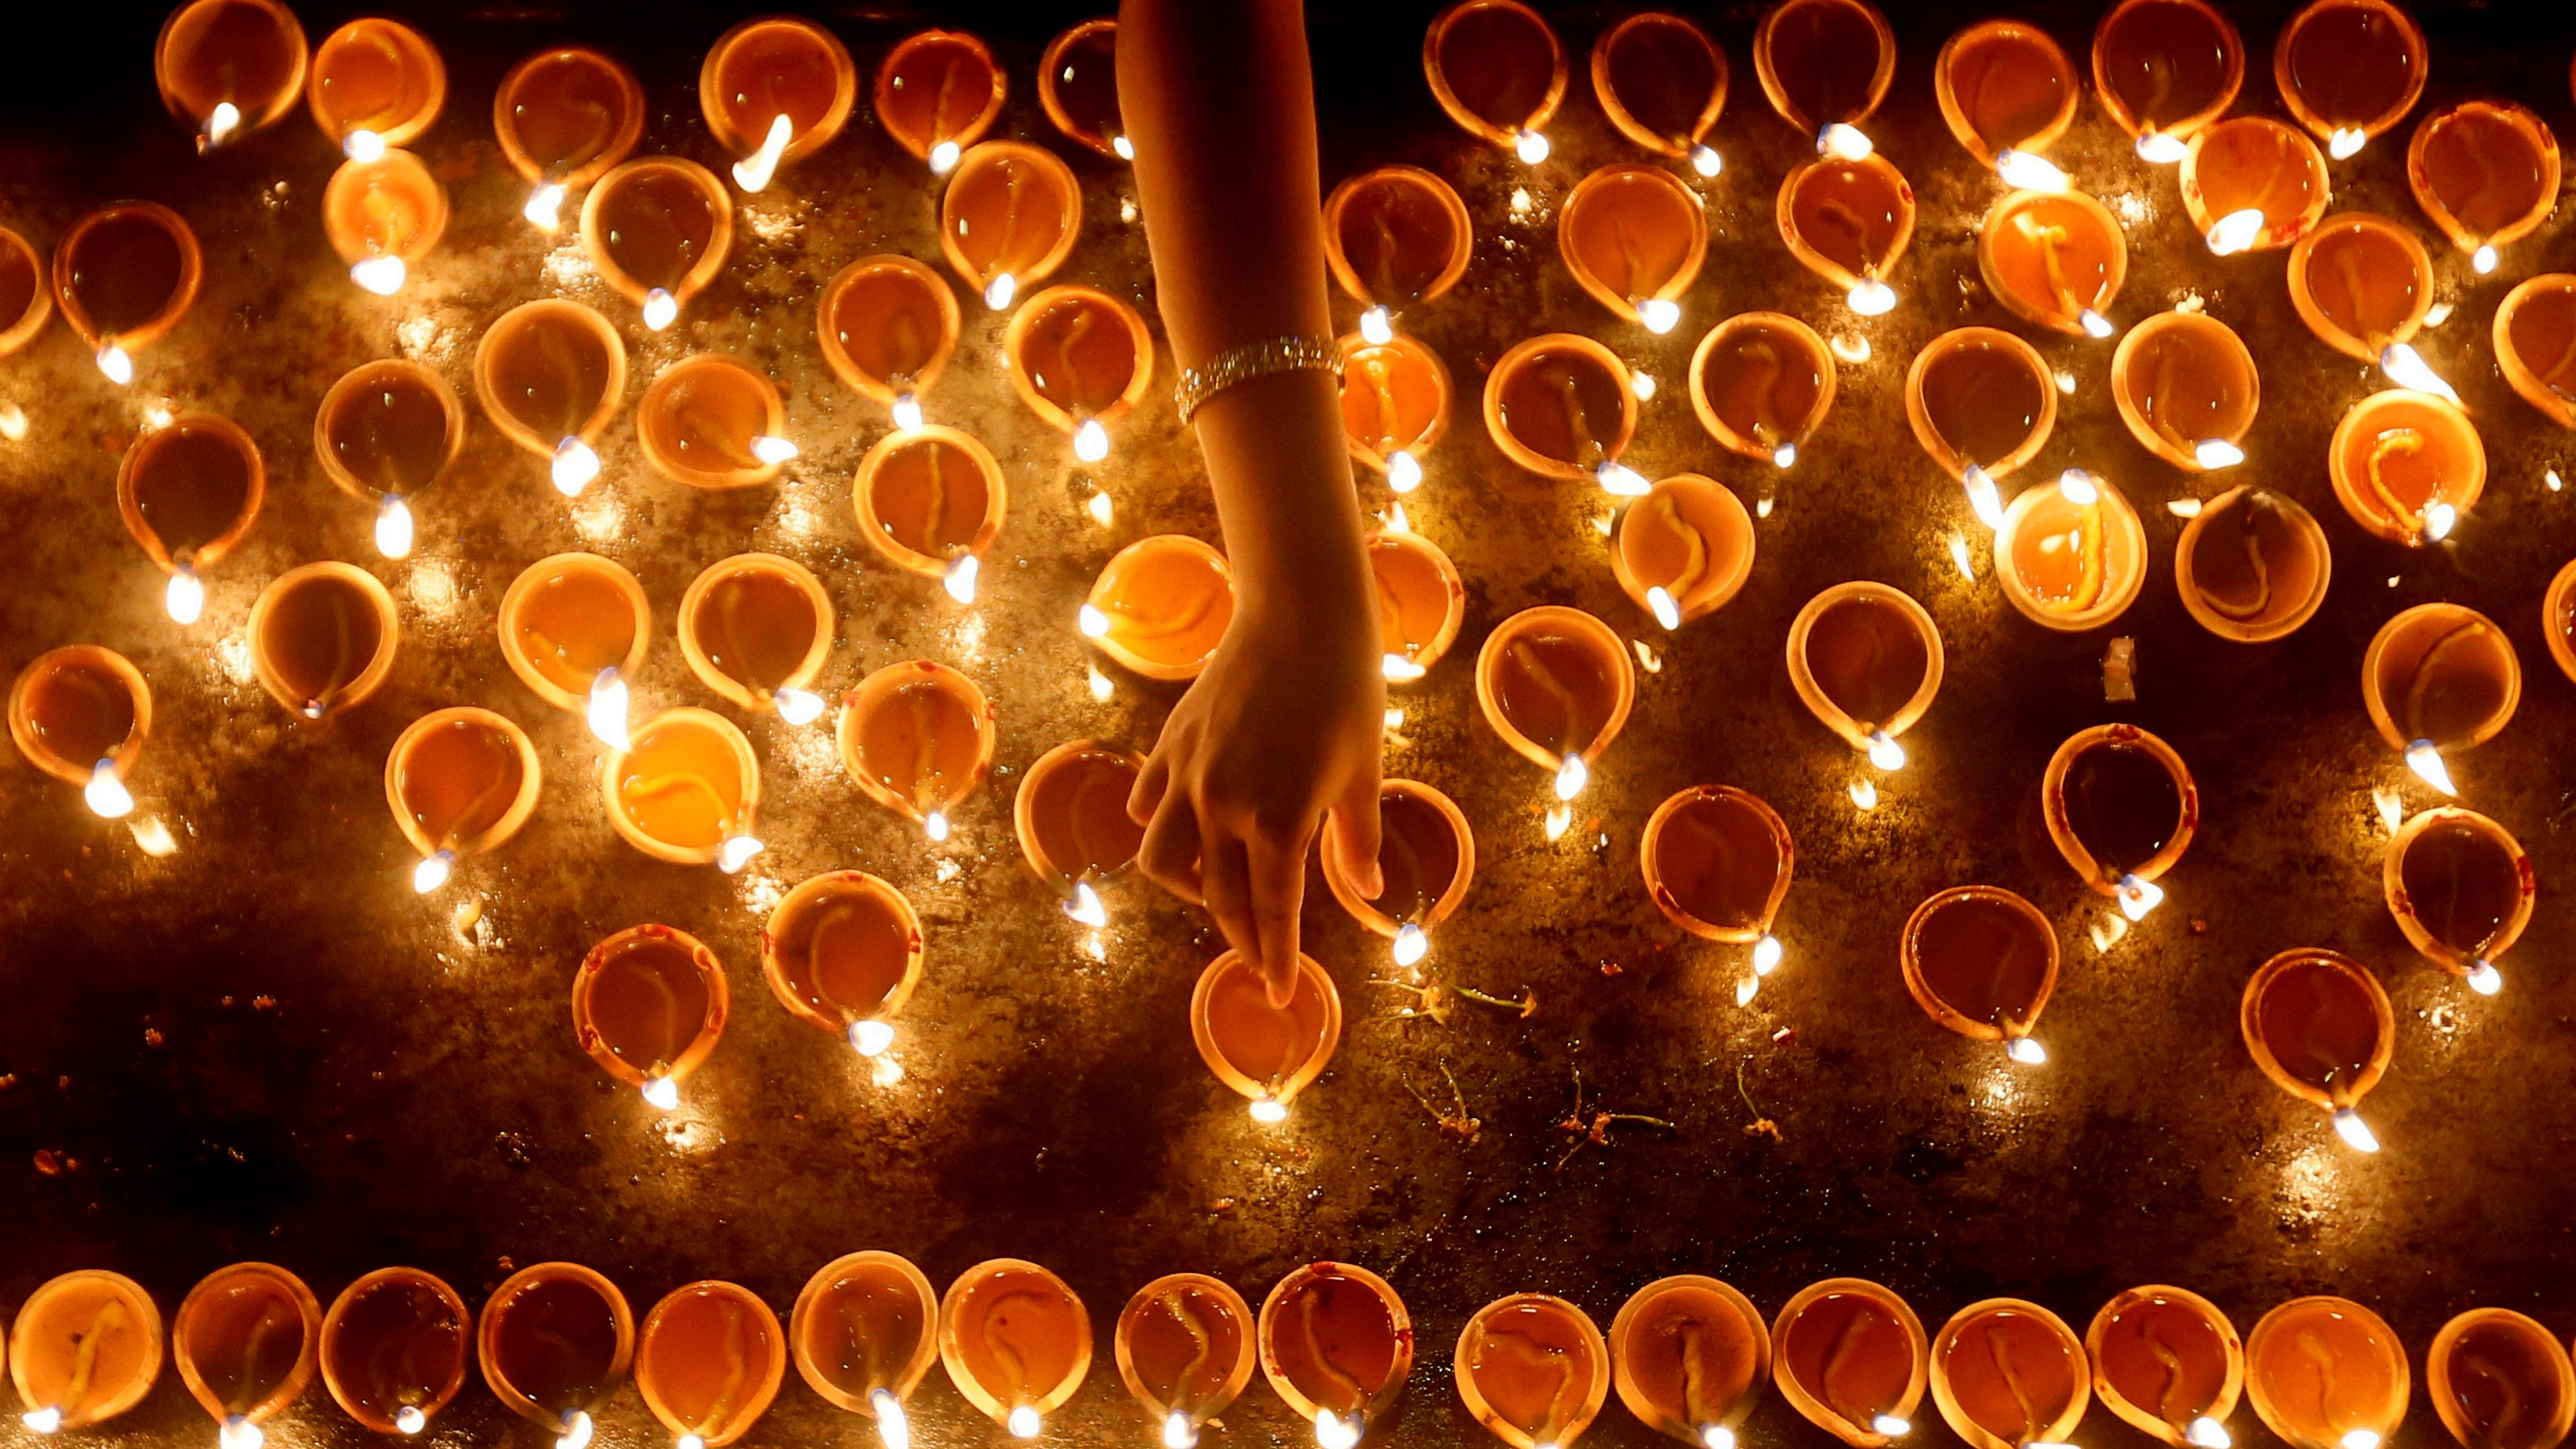 A devotee lights oil lamps at a religious ceremony during Diwali.